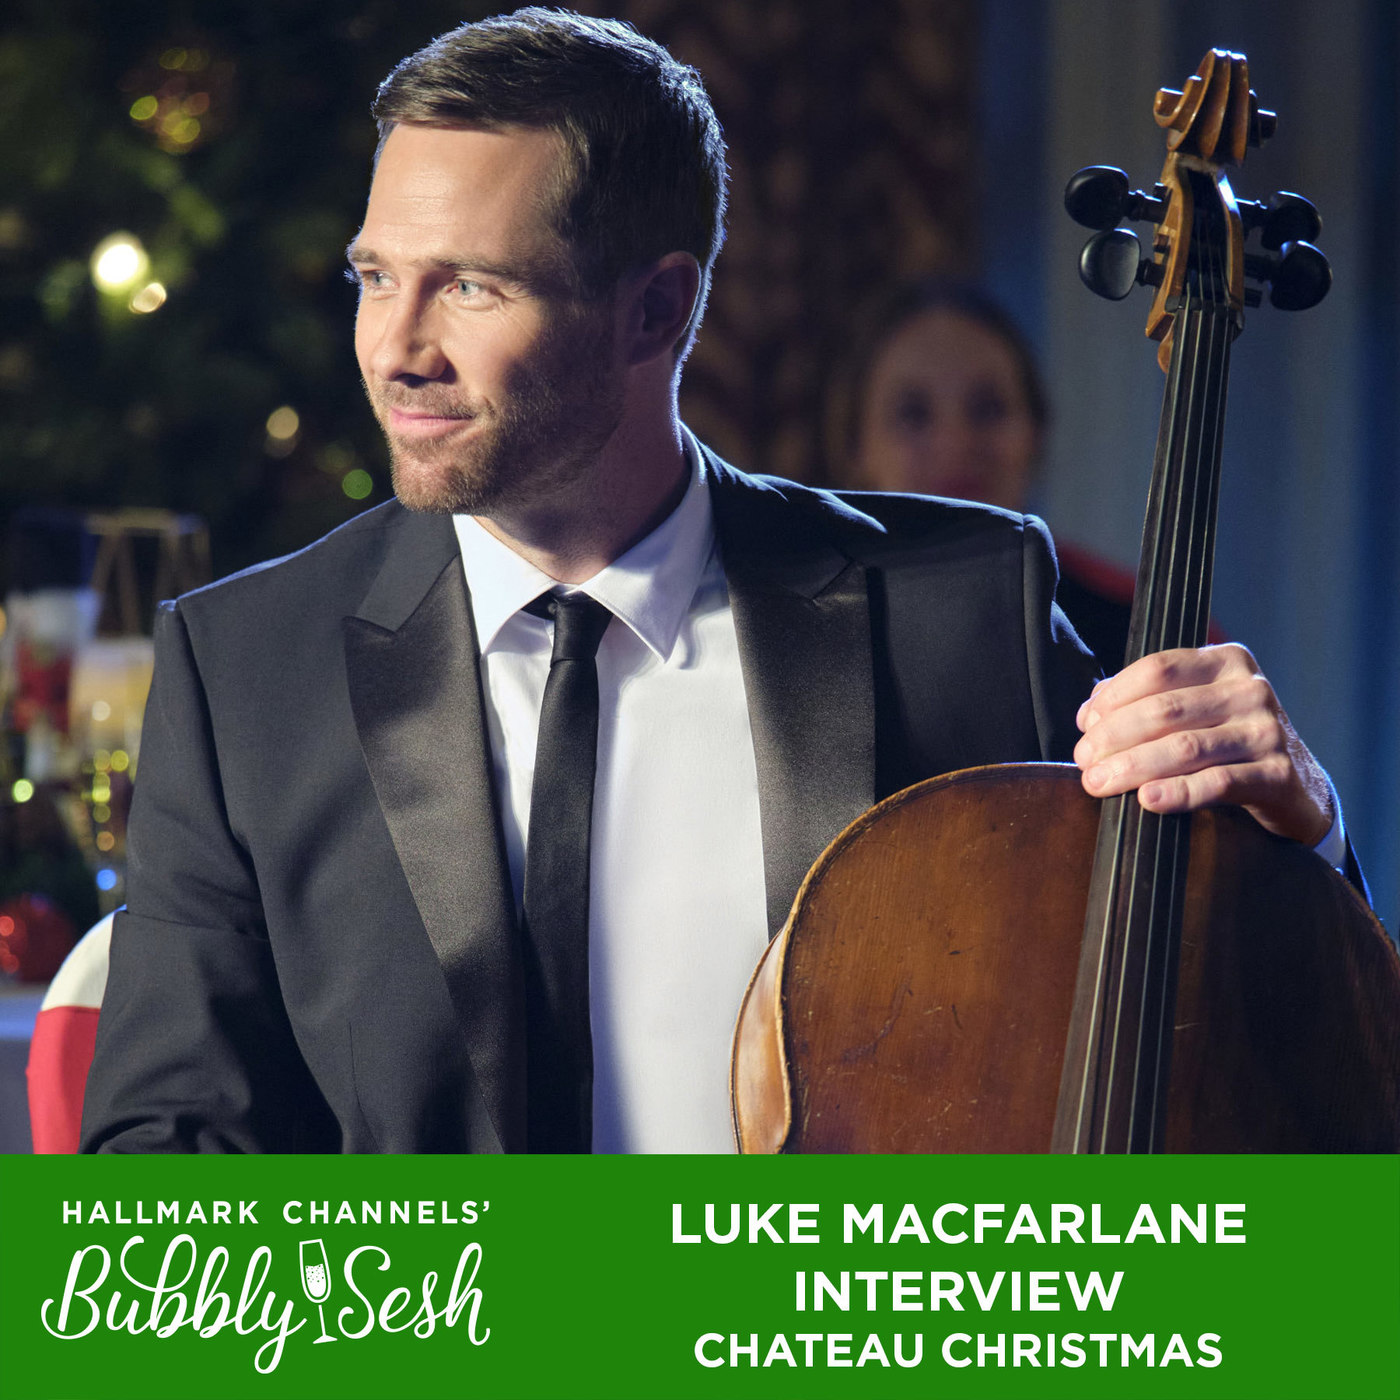 Luke MacFarlane Interview, Chateau Christmas